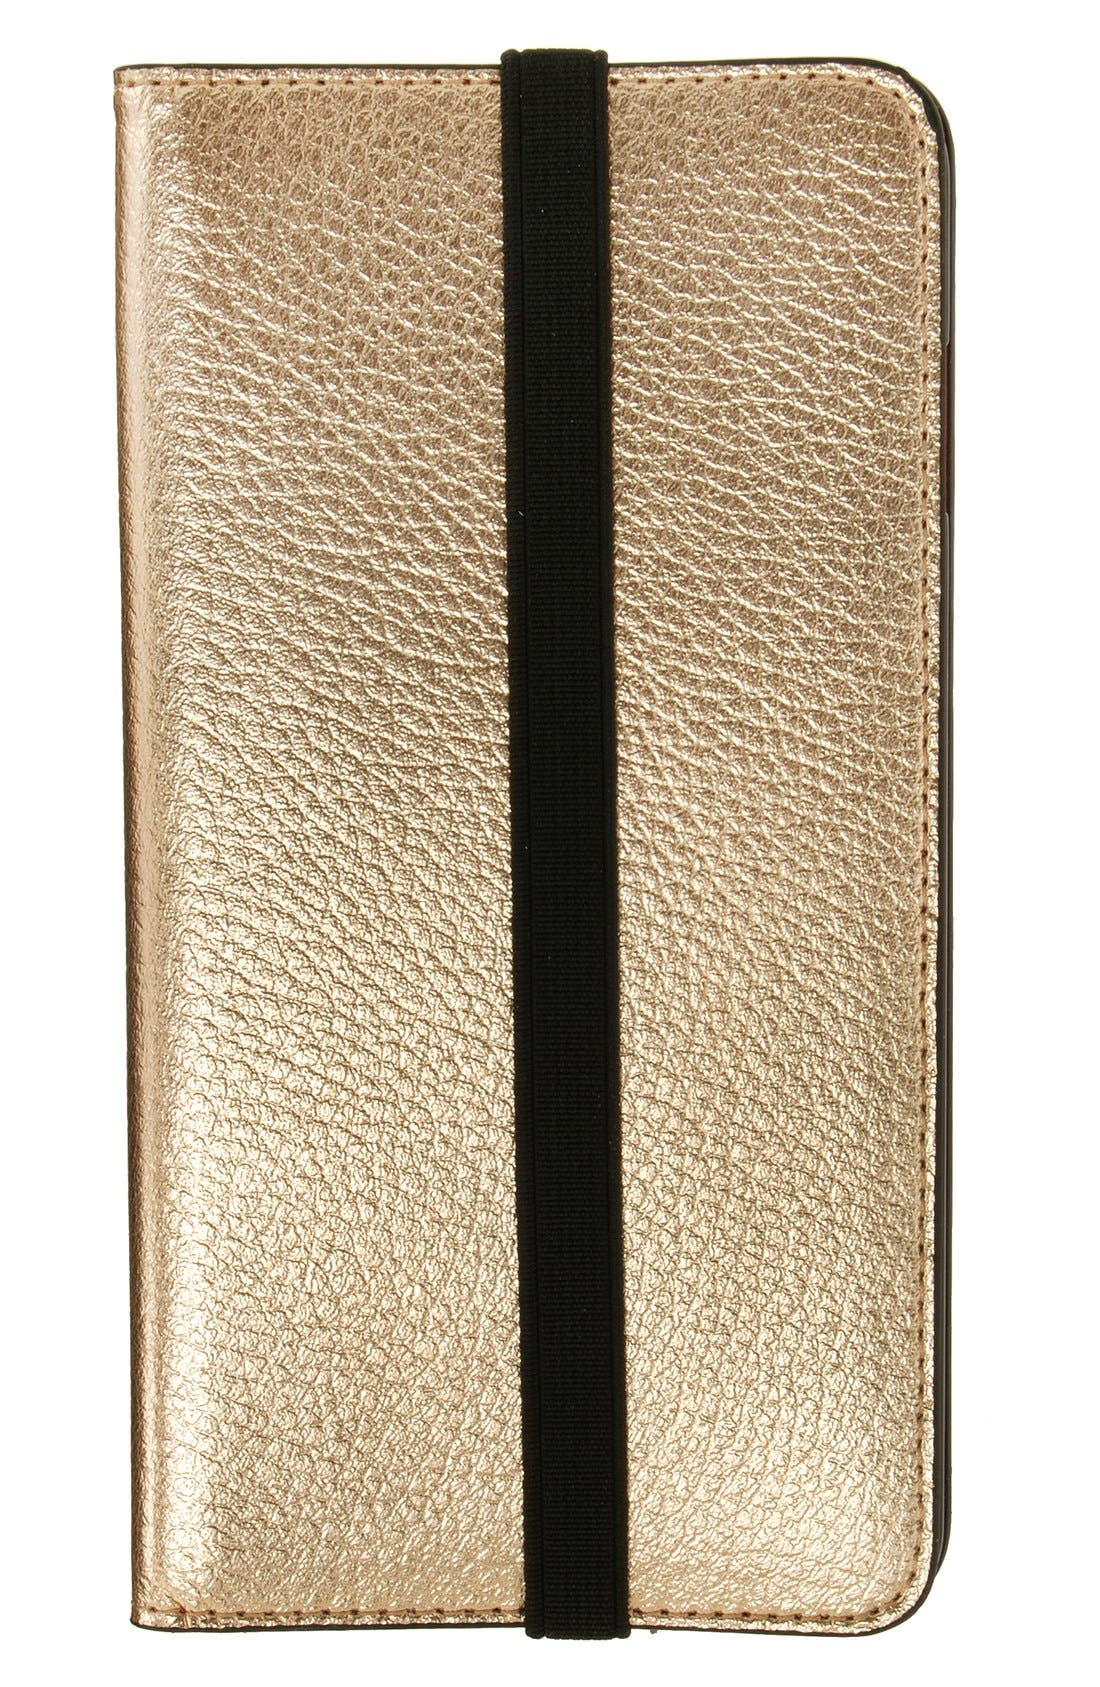 Mobileluxe iPhone 6 Plus/6s Plus Metallic Leather Wallet Case